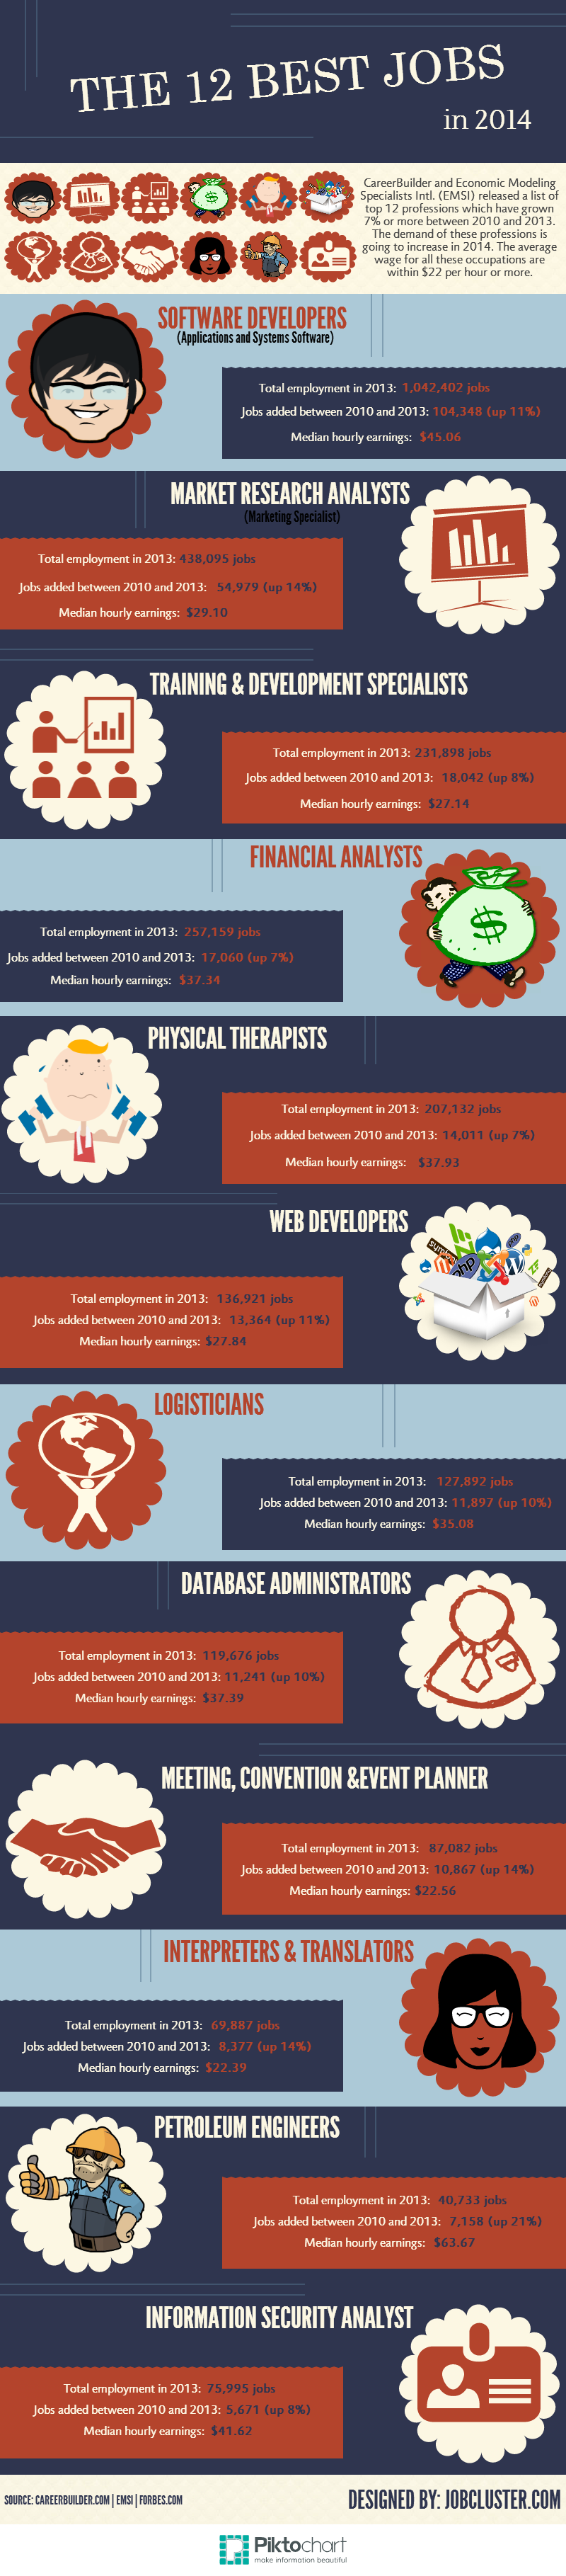 The Top 12 Jobs for 2014 infographic